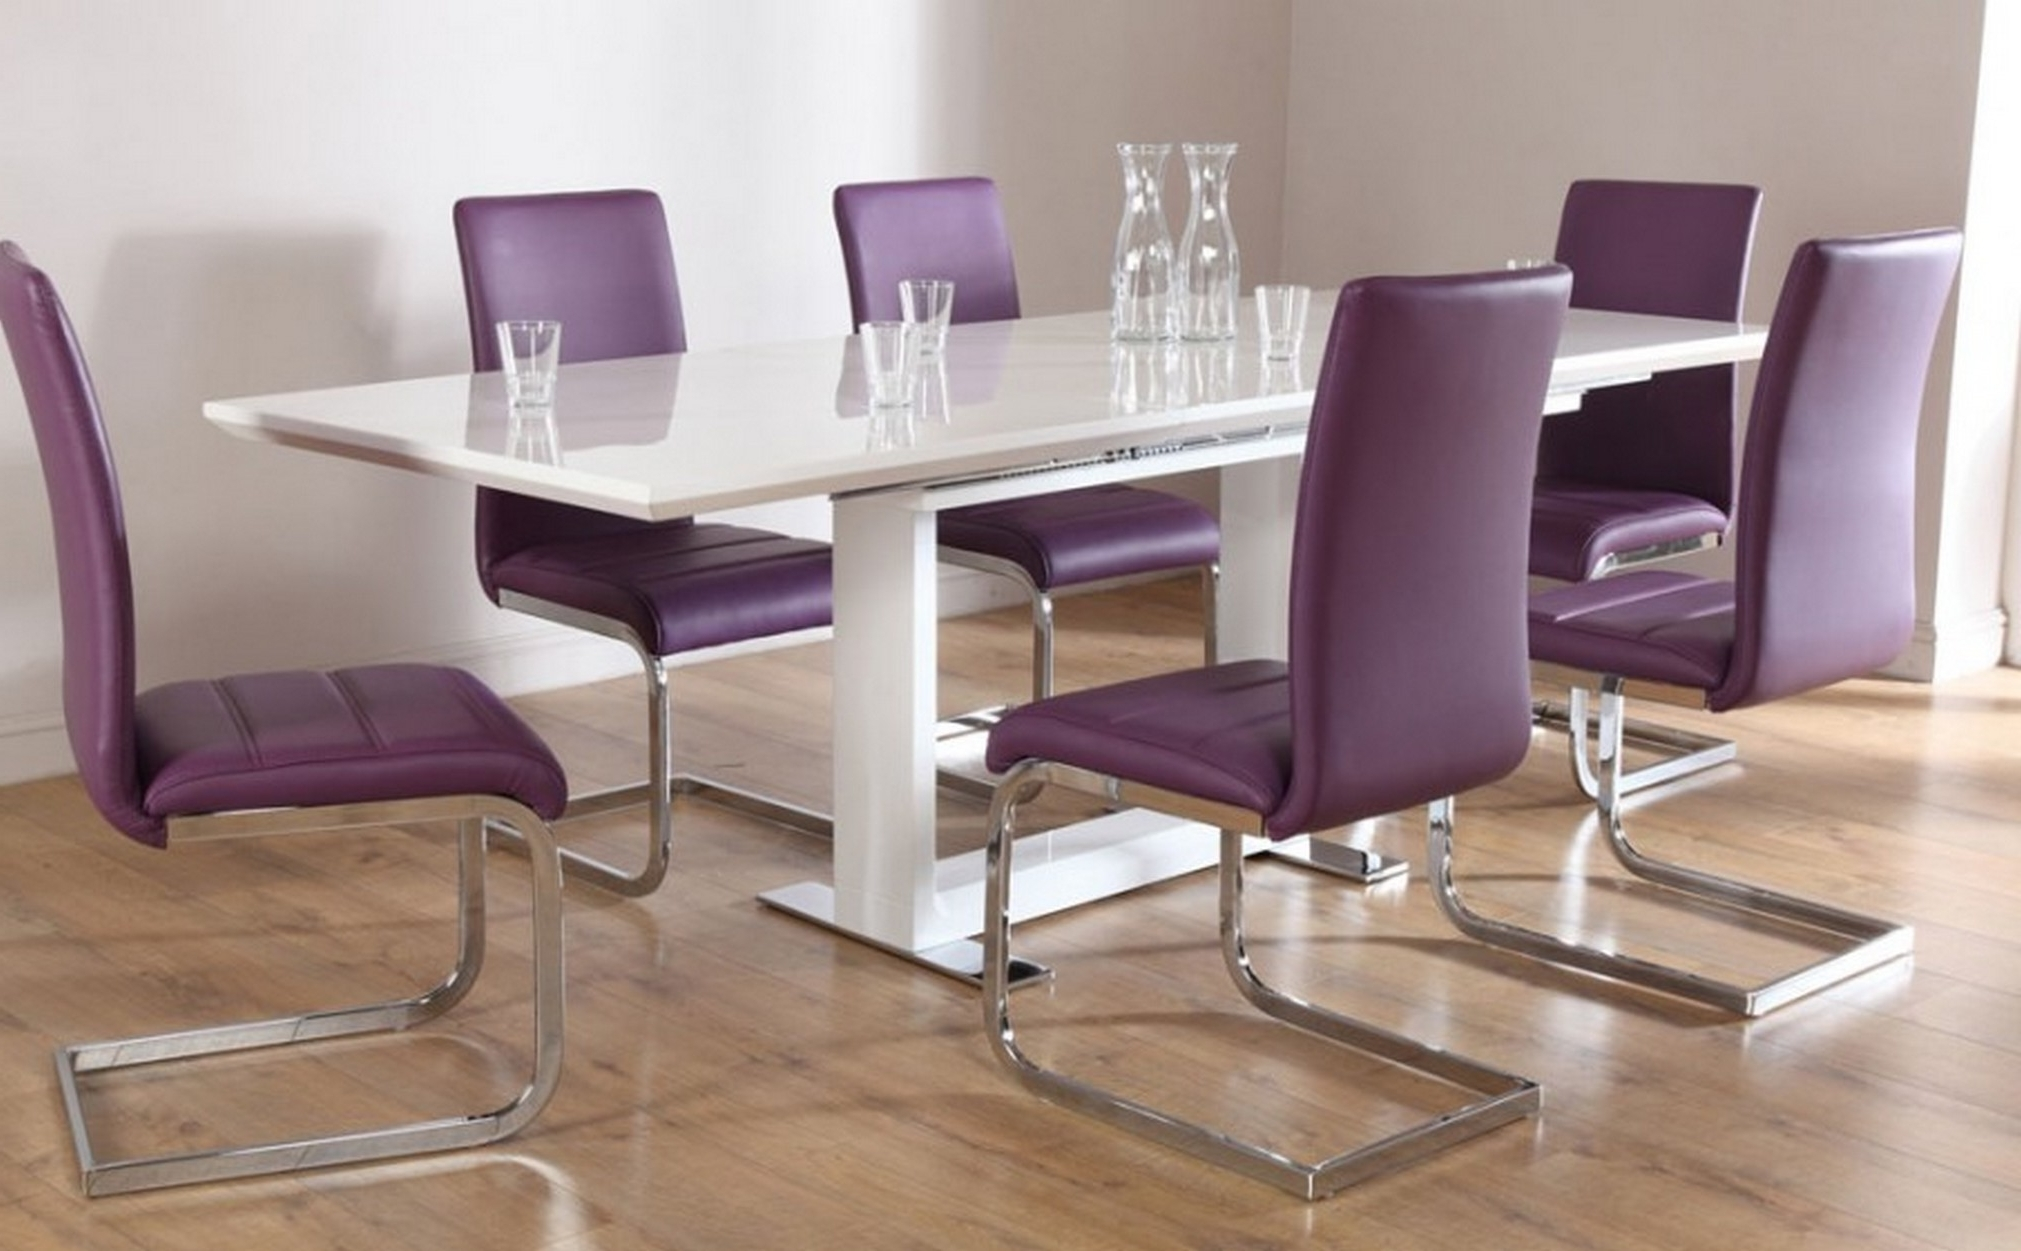 Latest Acrylic Dining Tables In Outstanding Small Dining Room Design With Rectangle White Acrylic (View 17 of 25)